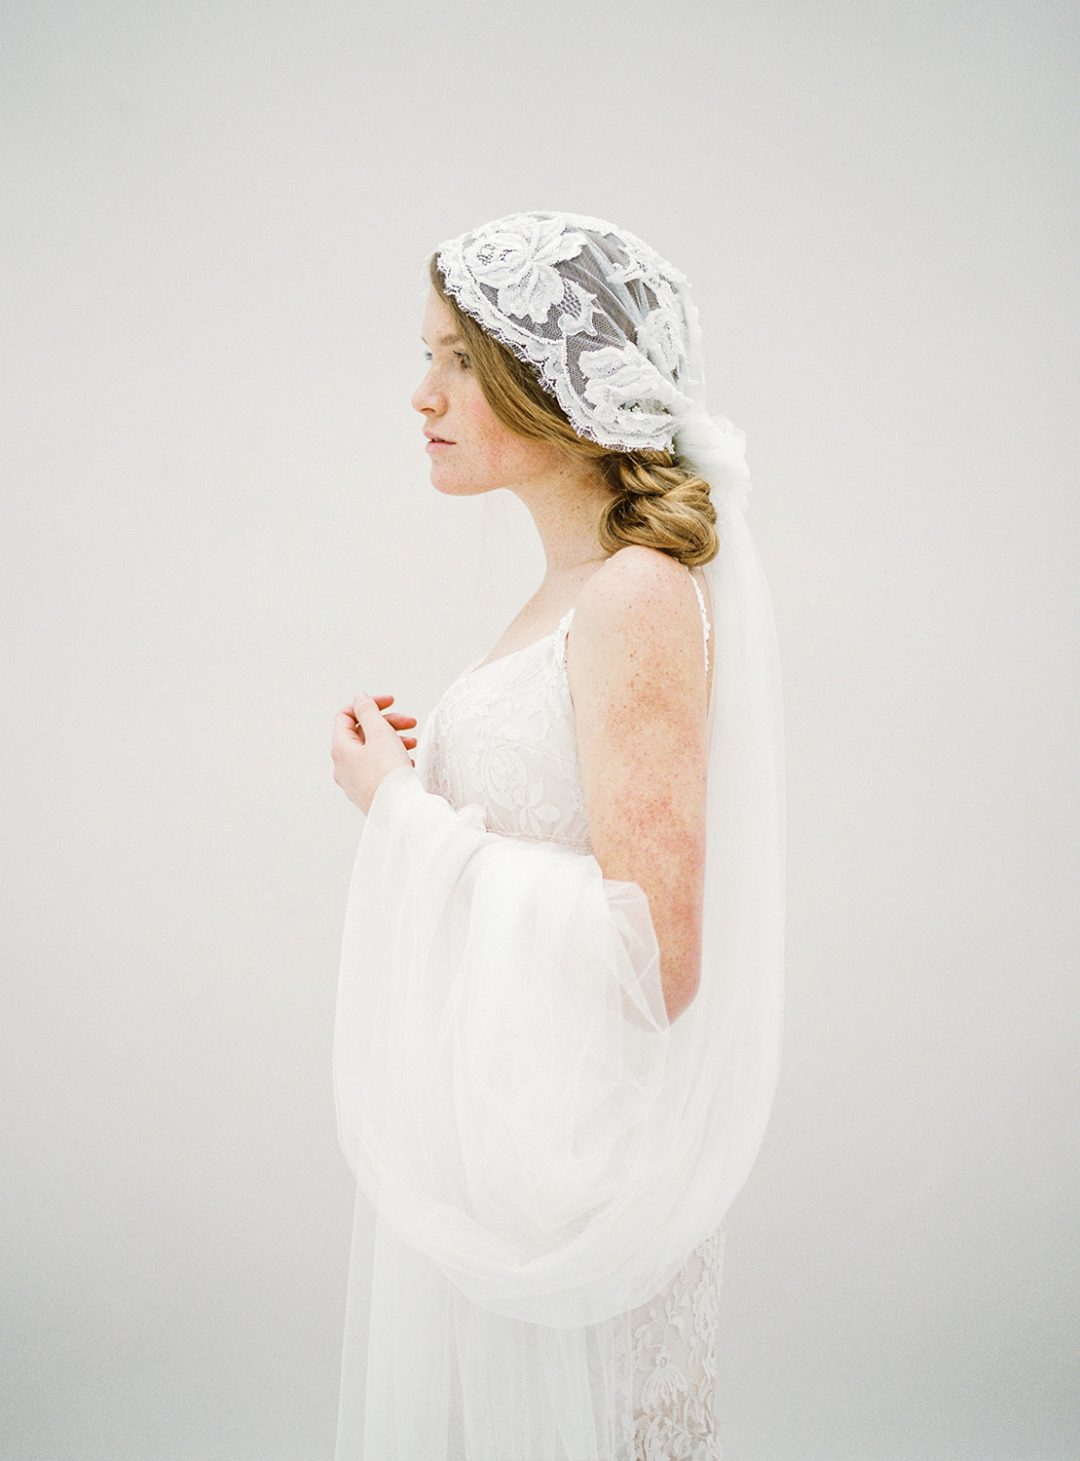 Style 618 - Beaded Juliet Cap Veil - © SIBO Designs Bridal Adornments & Veils